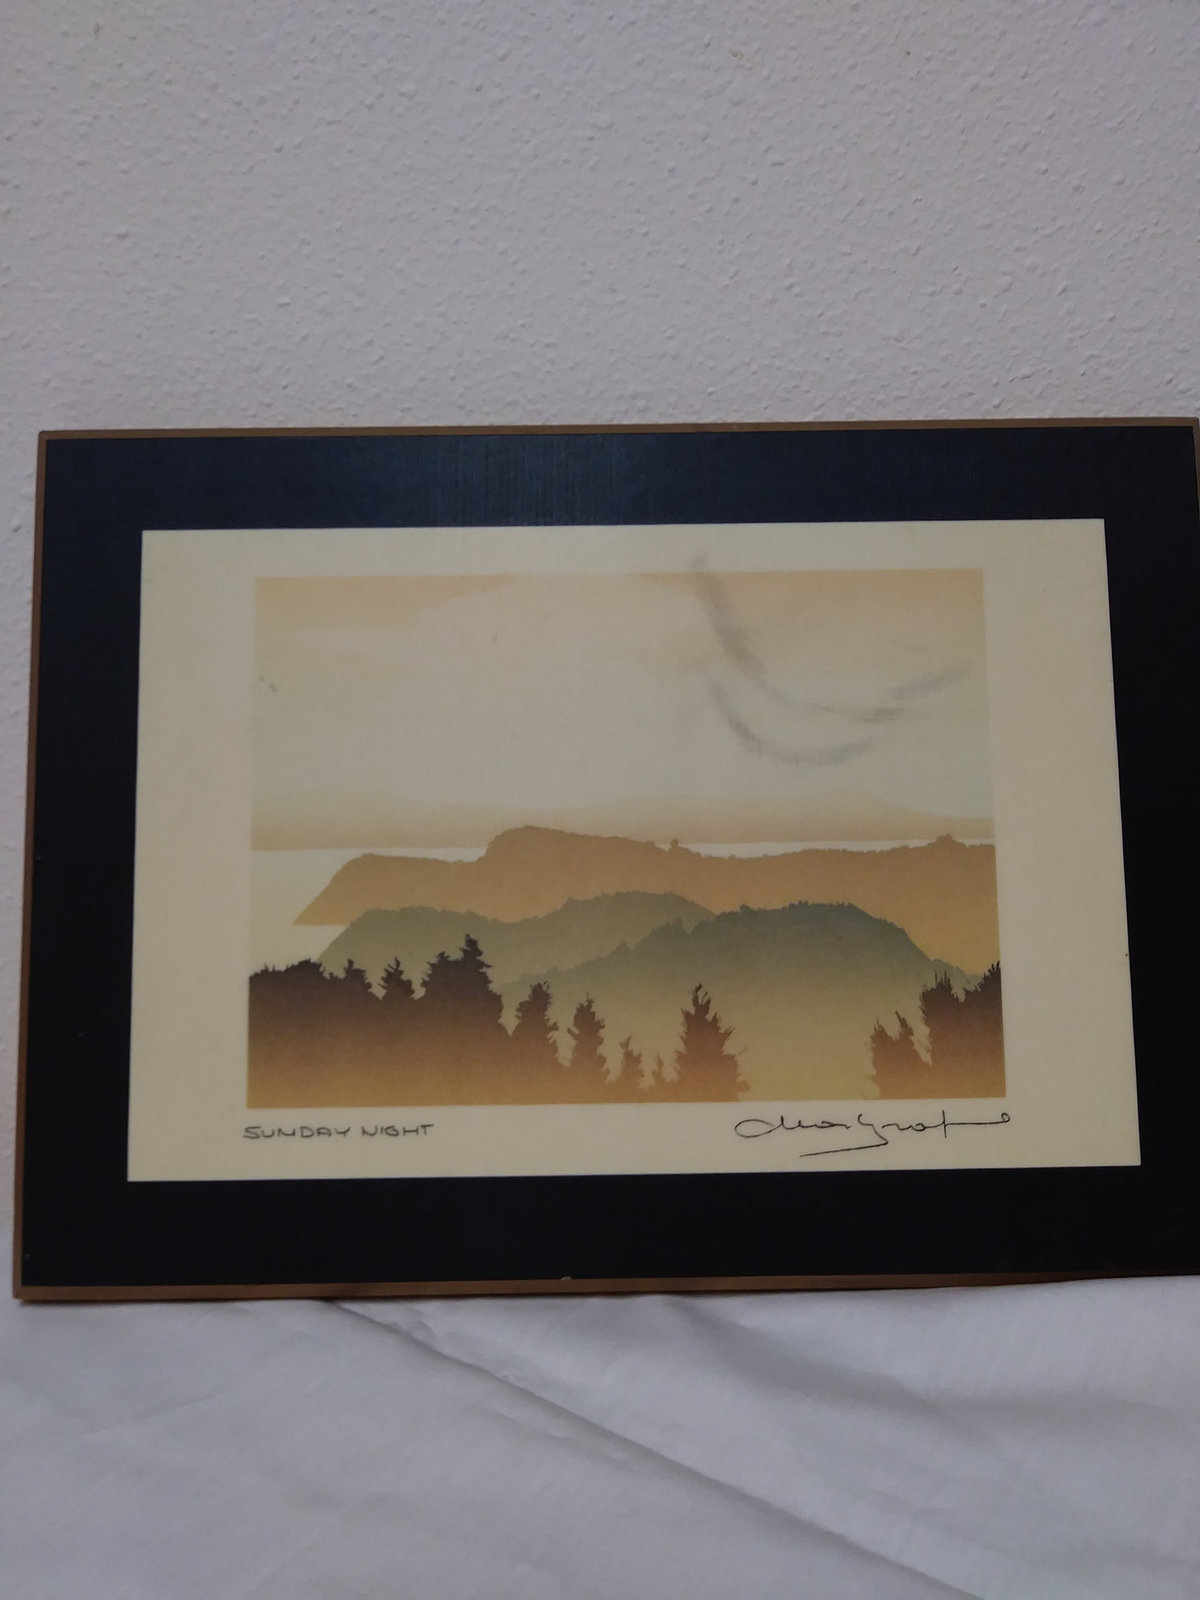 Sunday Night by Peter and Traudi Markgraf Wood Plaque Signed Art Work Print